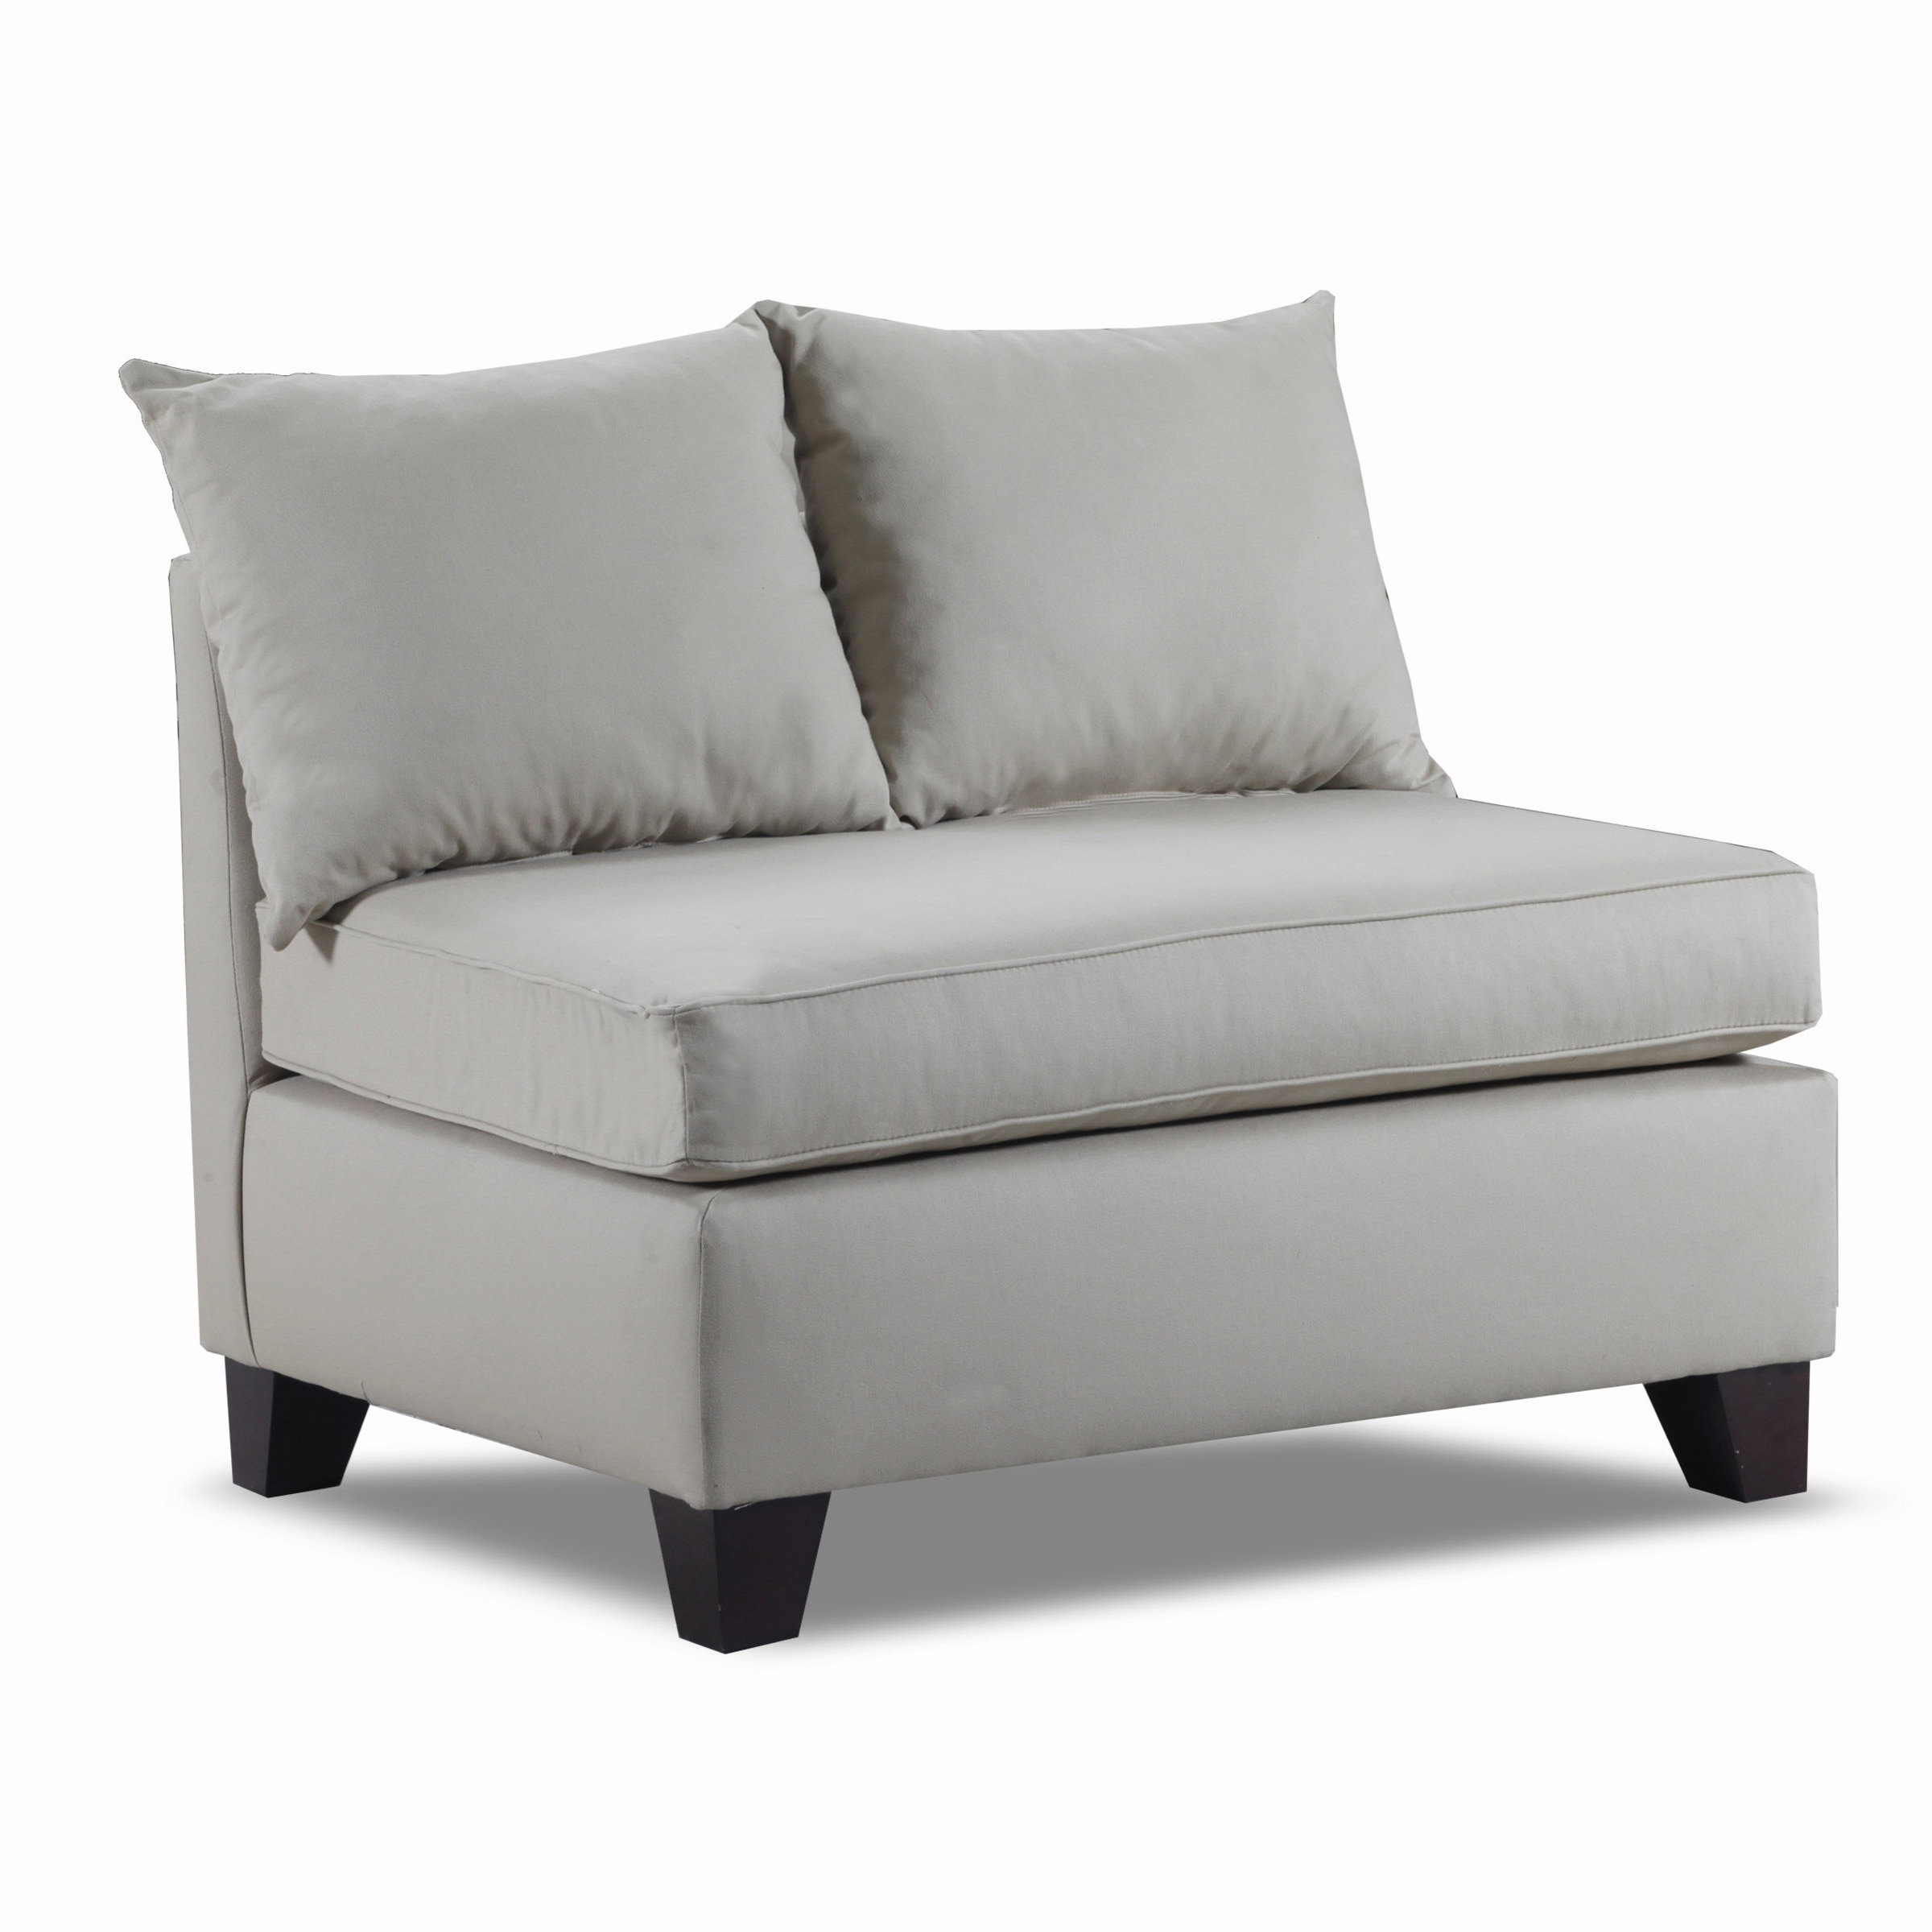 Carolina Accents Belle Meade Armless Loveseat by Overstock